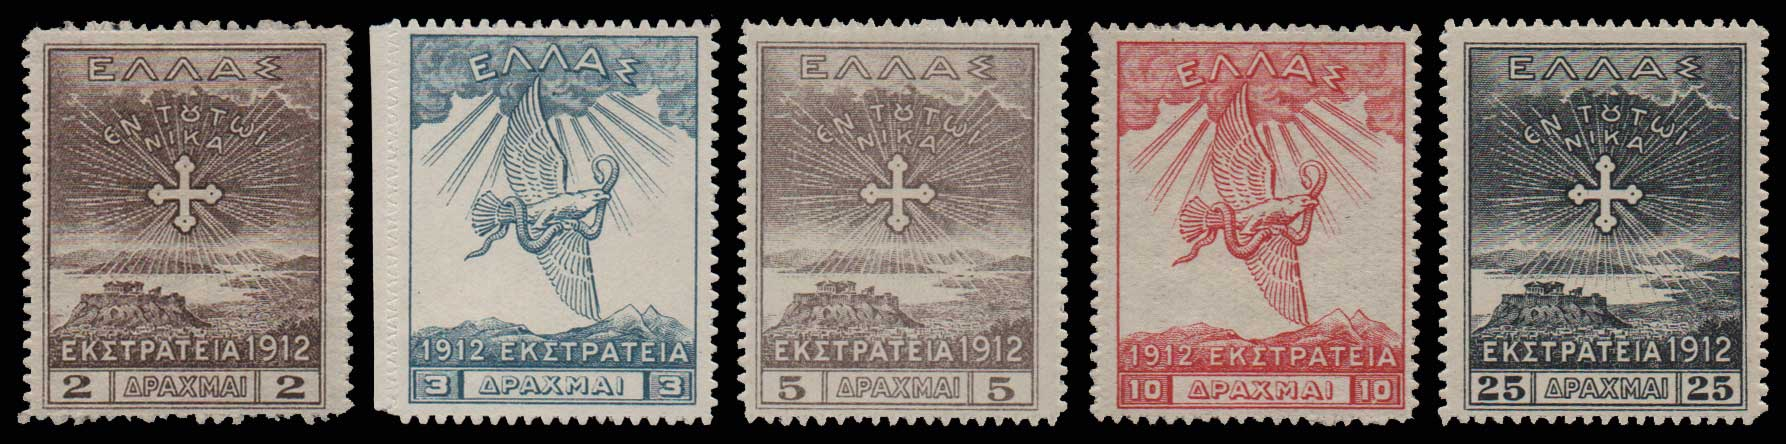 Lot 619 - -  1911 - 1923 1913 campaign (1912) -  Athens Auctions Public Auction 77 General Stamp Sale